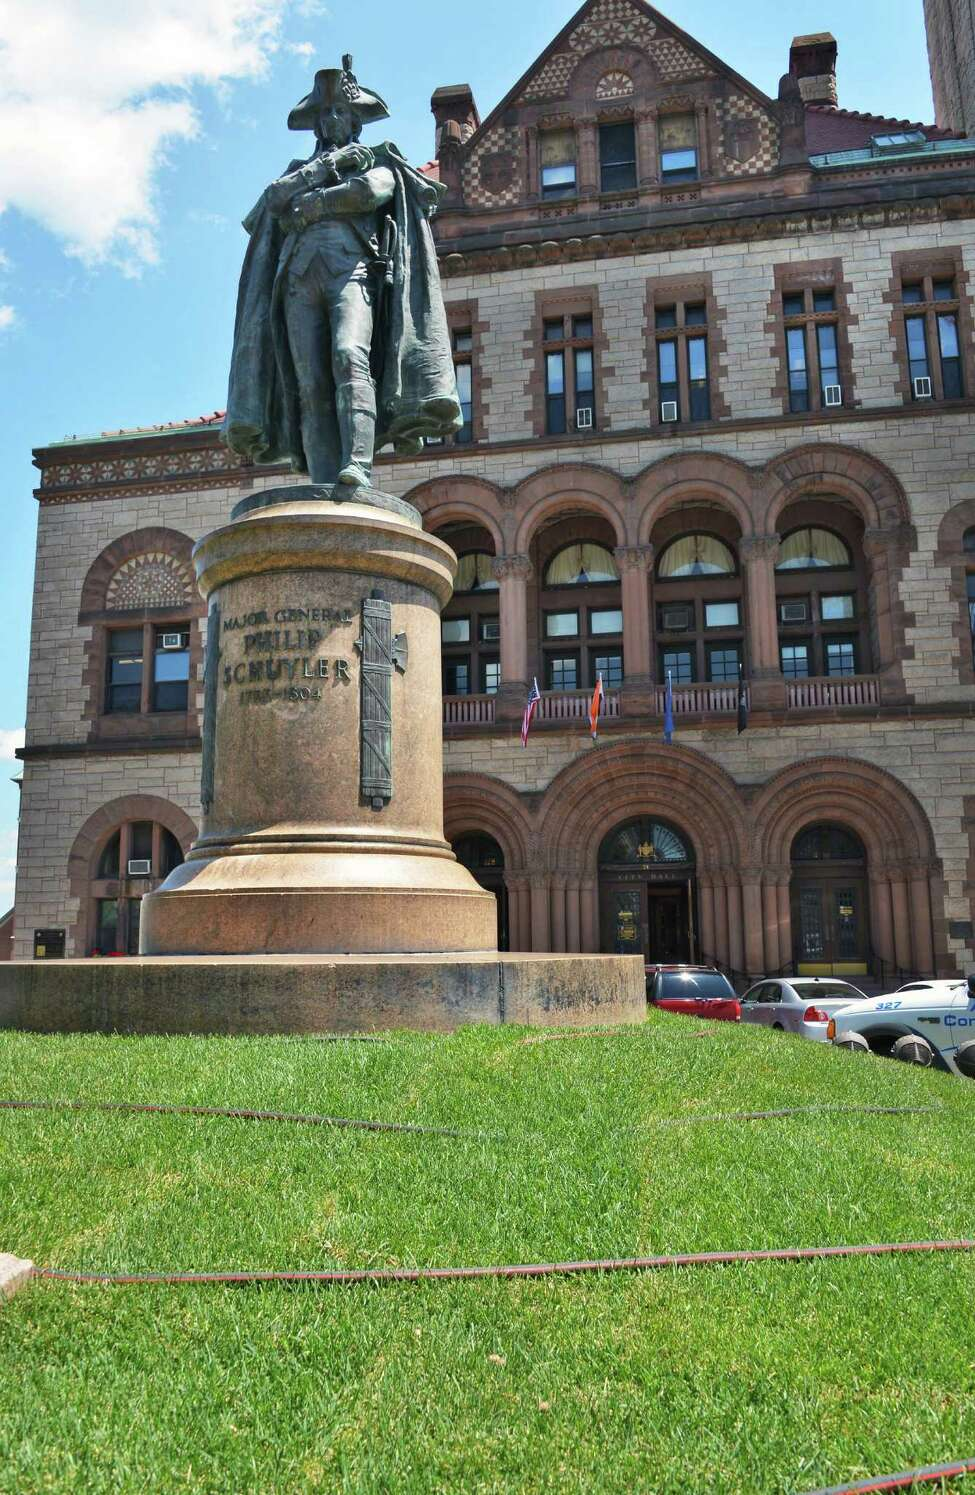 New grass surrounds the statue of of Gen. Philip Schuyler in front of Albany City Hall Thursday June 28, 2012. (John Carl D'Annibale / Times Union)